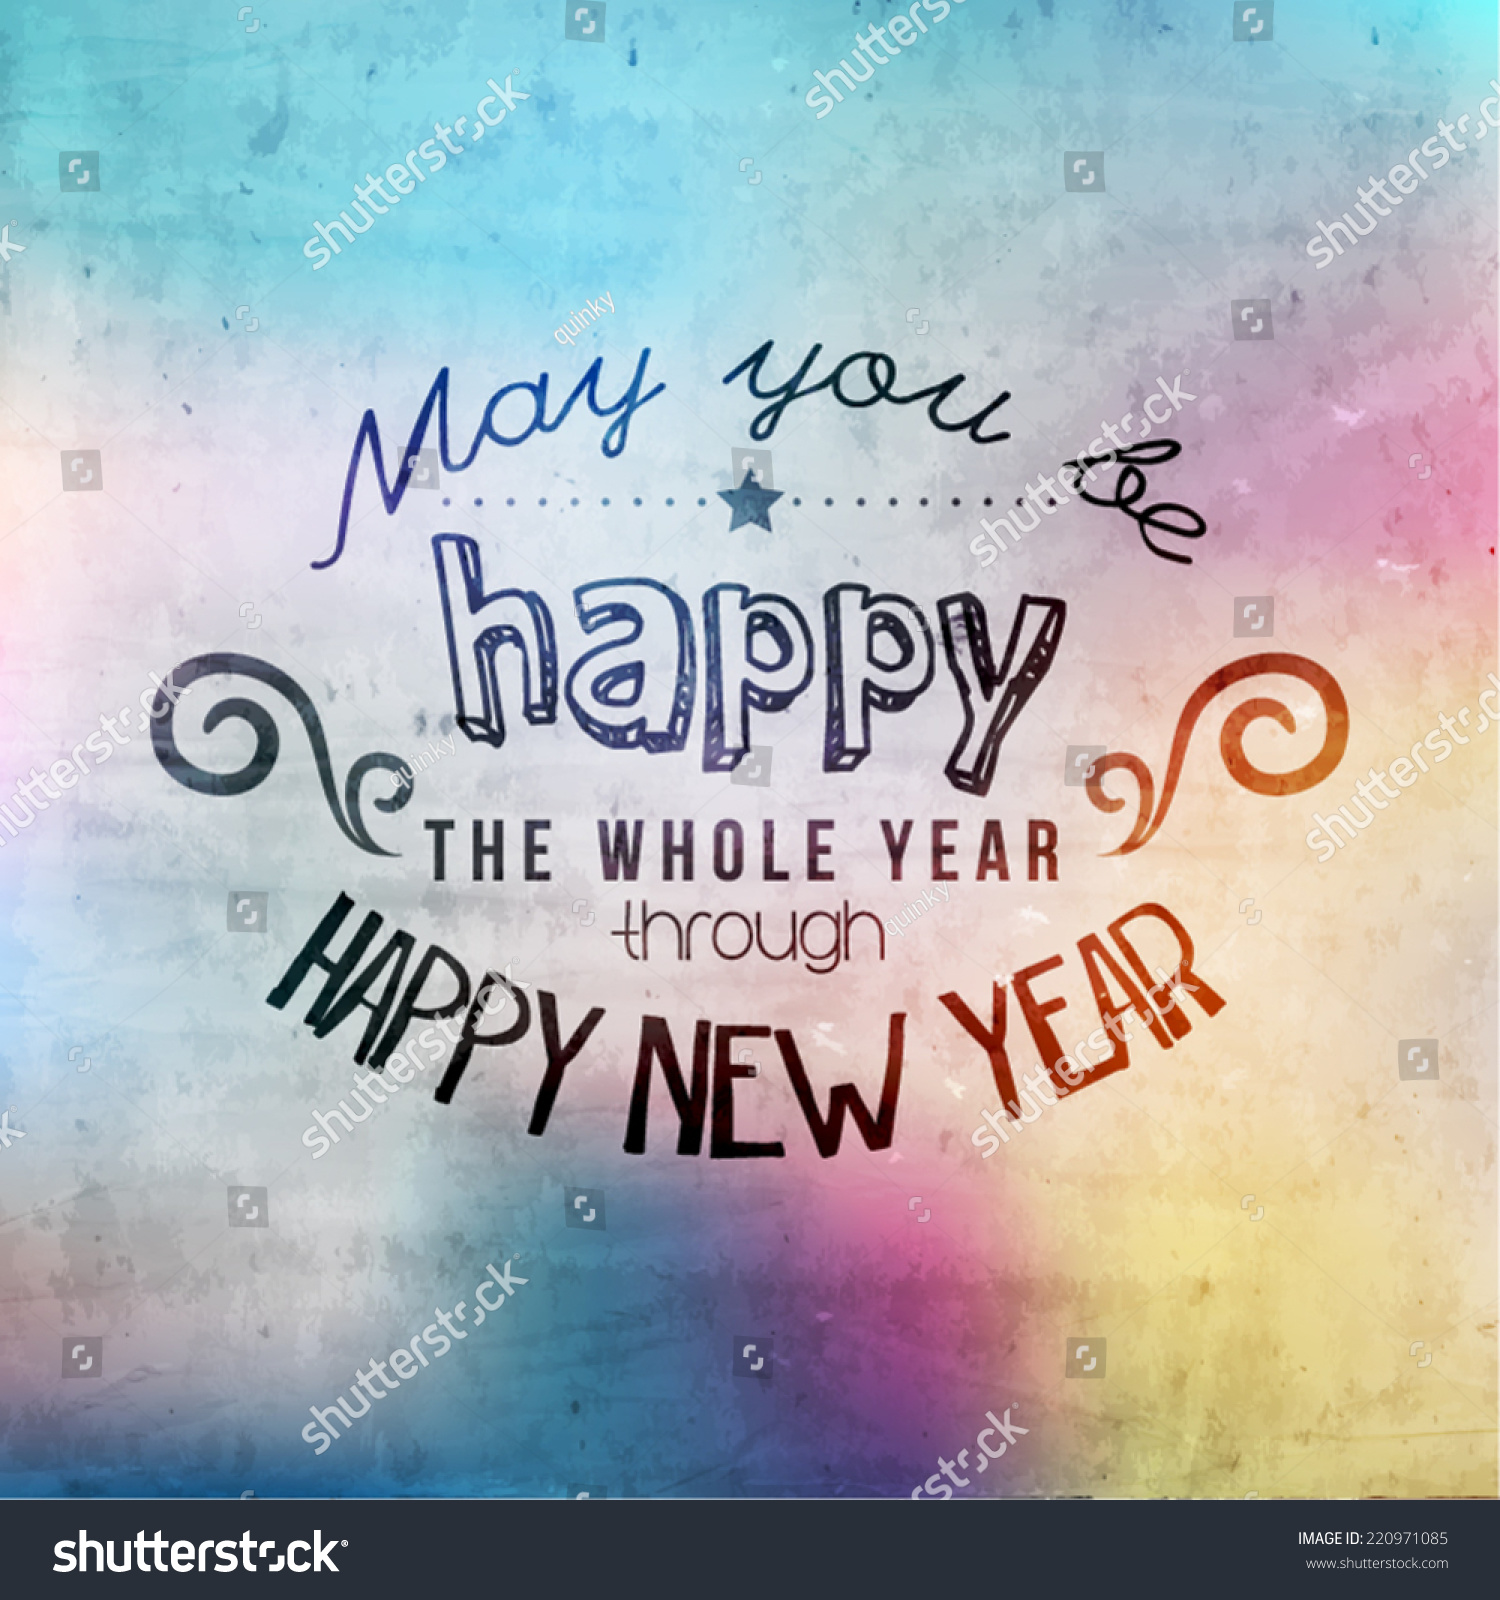 Happy new year greetings quote vector stock vector royalty free happy new year greetings quote vector design m4hsunfo